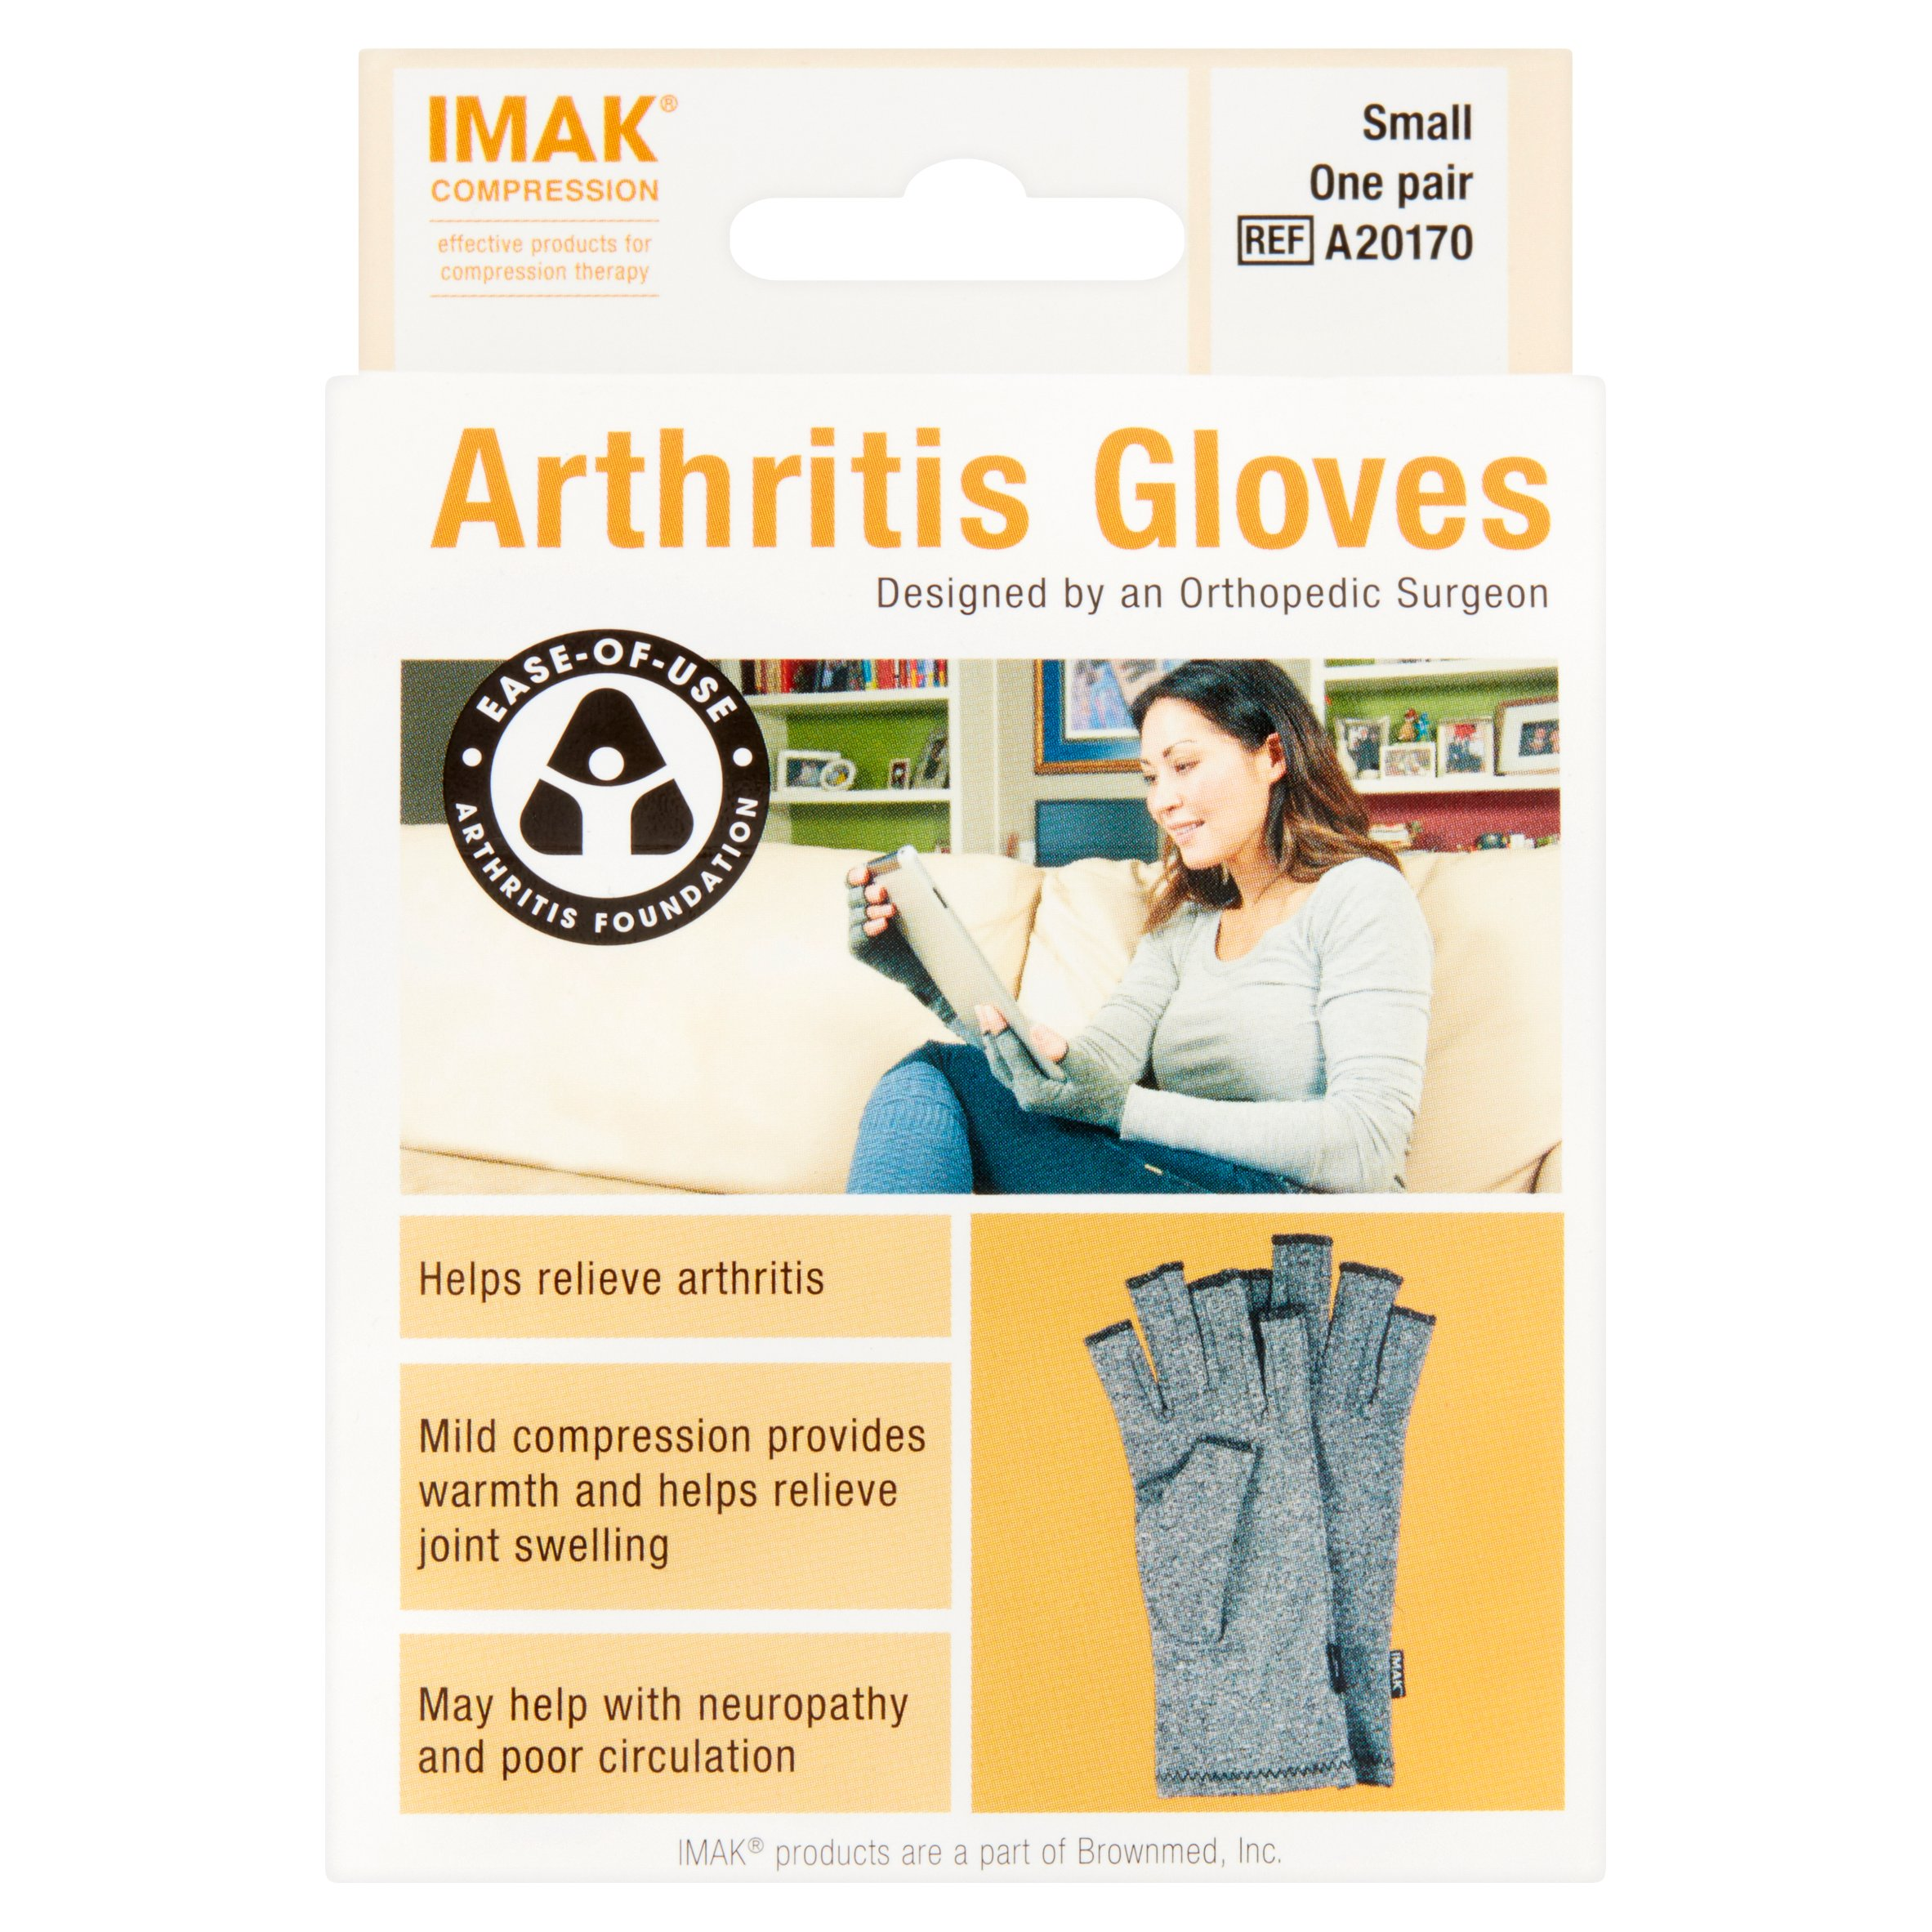 Imak Compression Small Arhritis Gloves, one pair